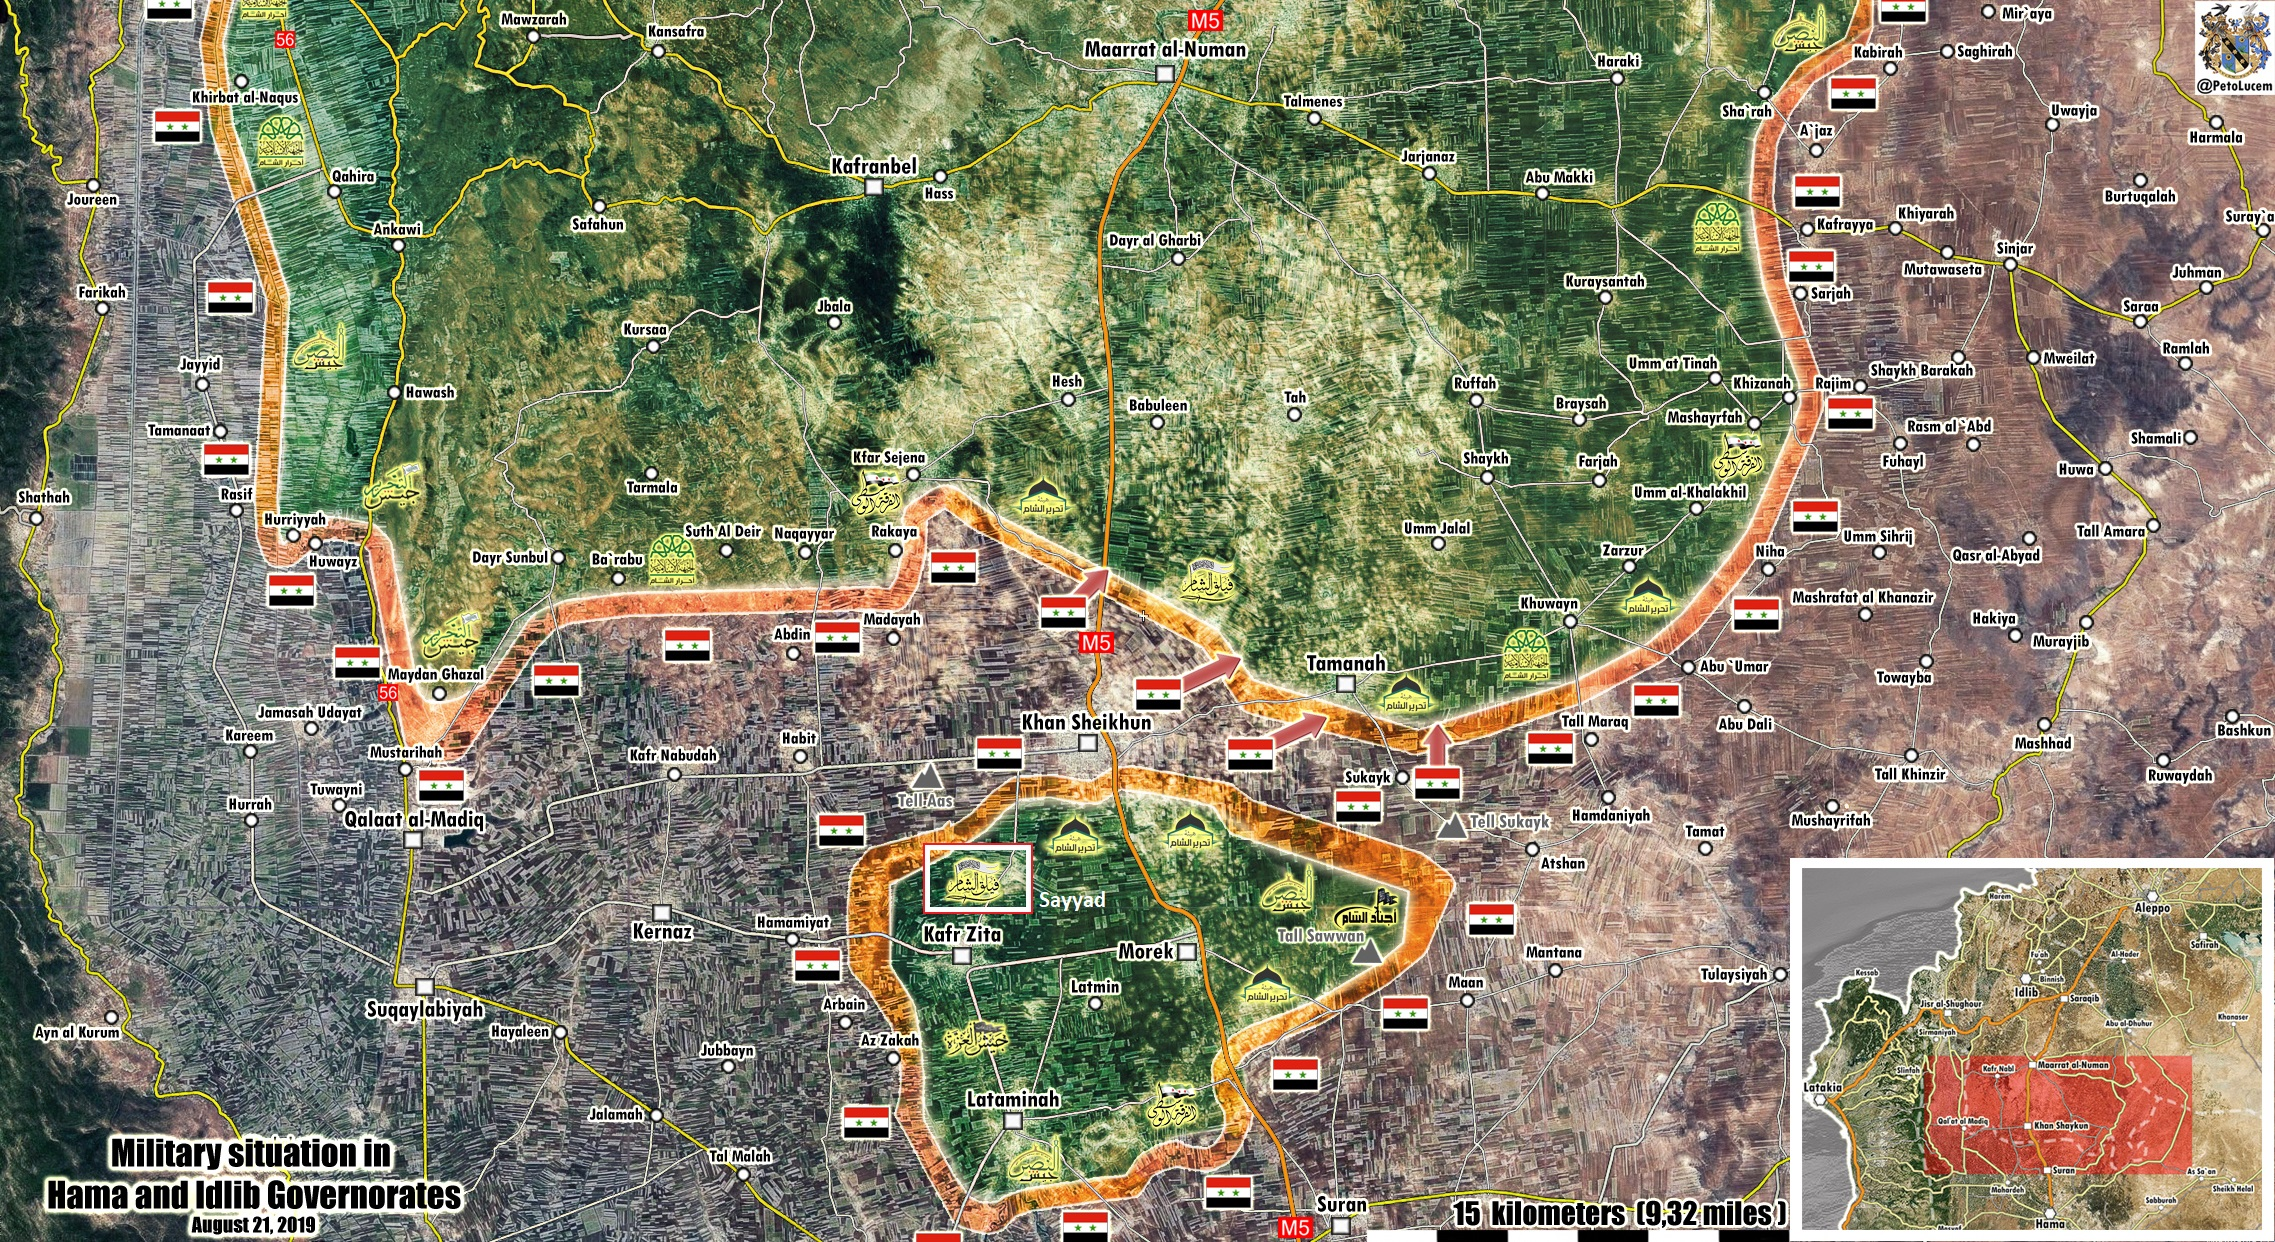 Syrian Army Advances In Northern Hama Enclave, Captures Village